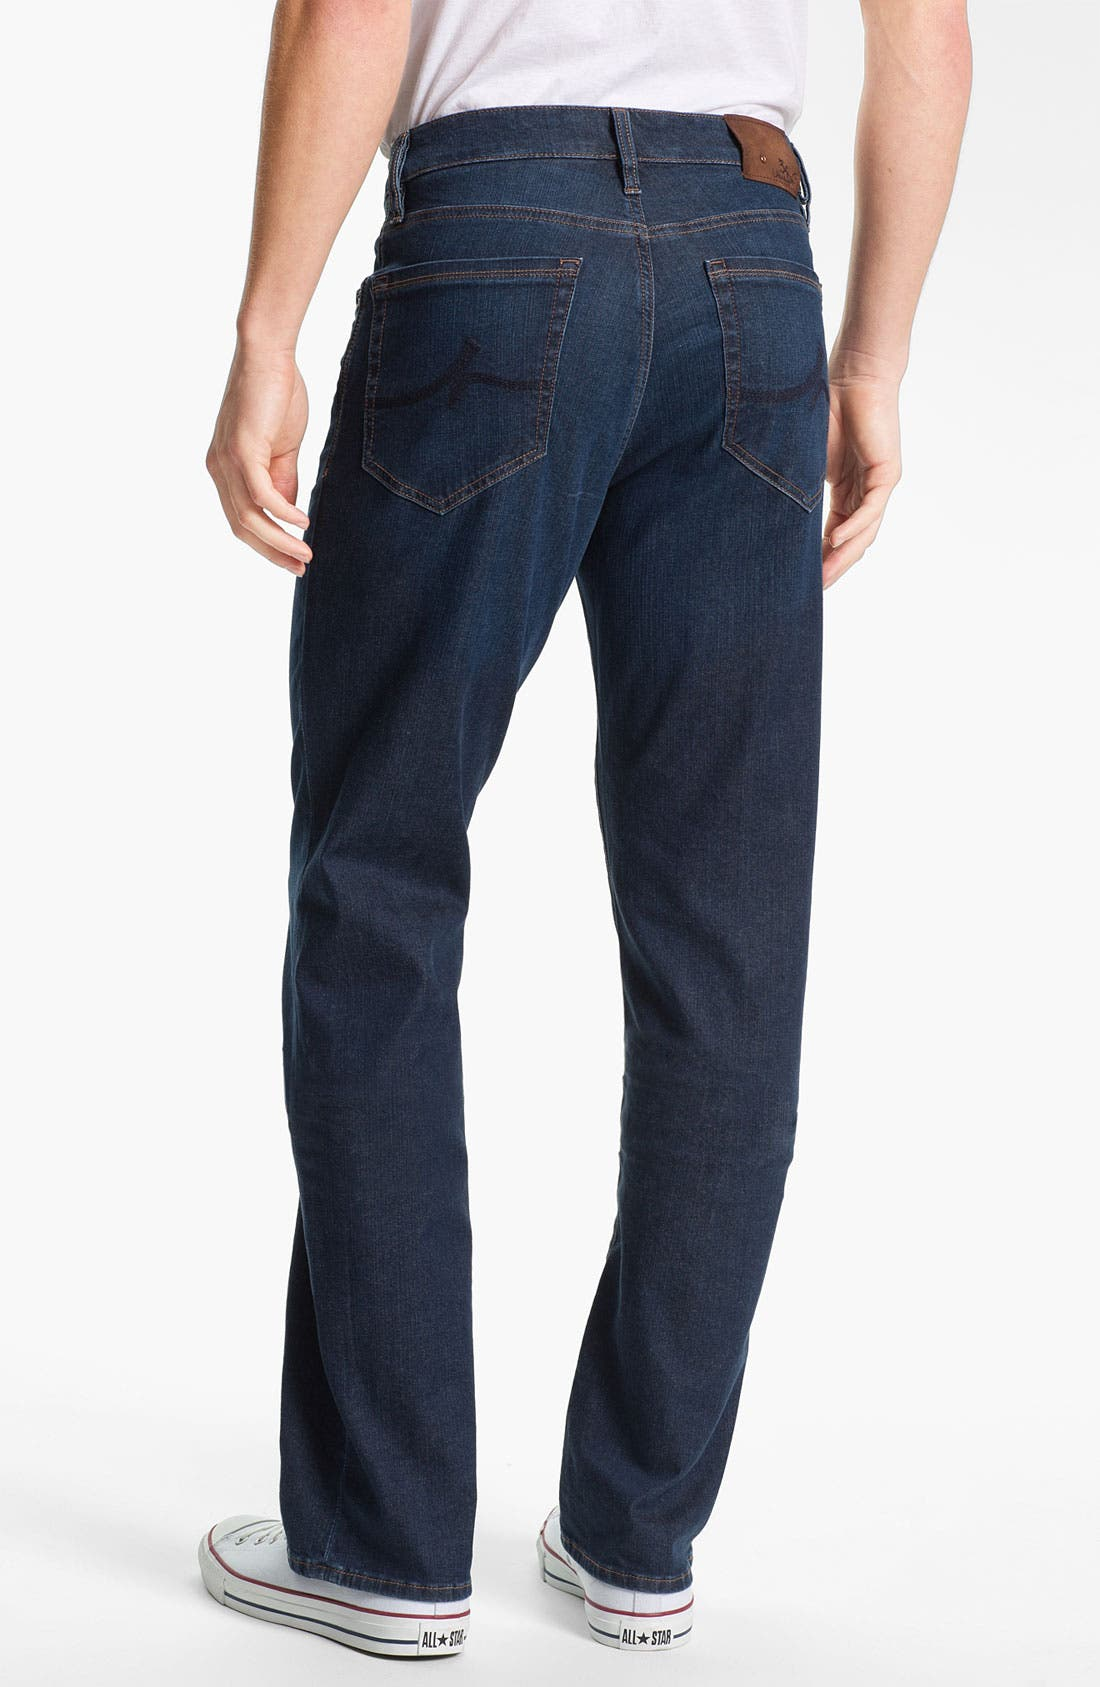 34 HERITAGE,                             'Charisma' Classic Relaxed Fit Jeans,                             Alternate thumbnail 3, color,                             DARK CASHMERE WASH